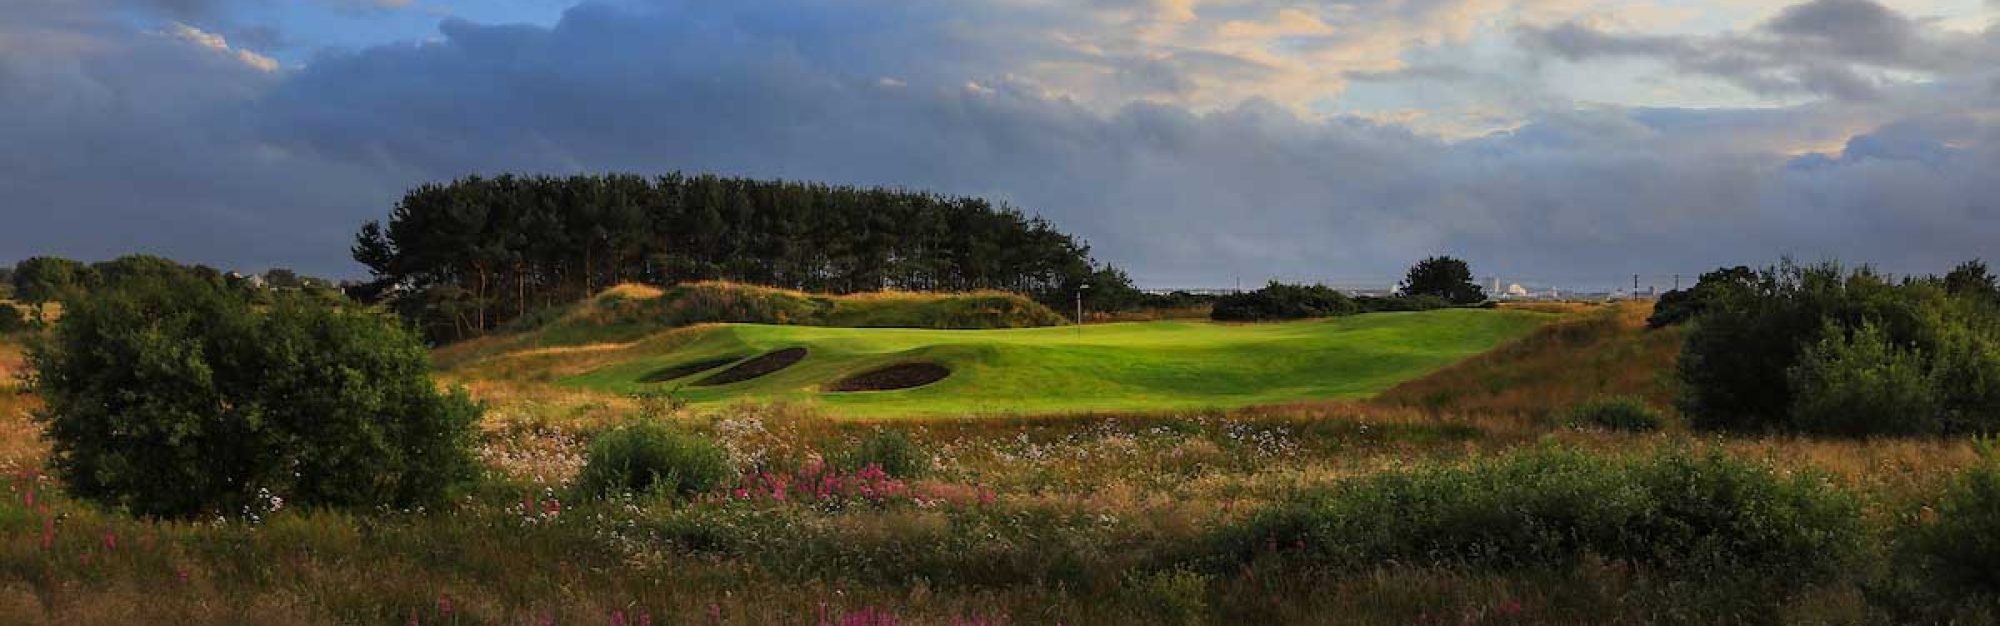 The £25 million makeover that's transforming Dundonald Links into one of the UK's finest resorts